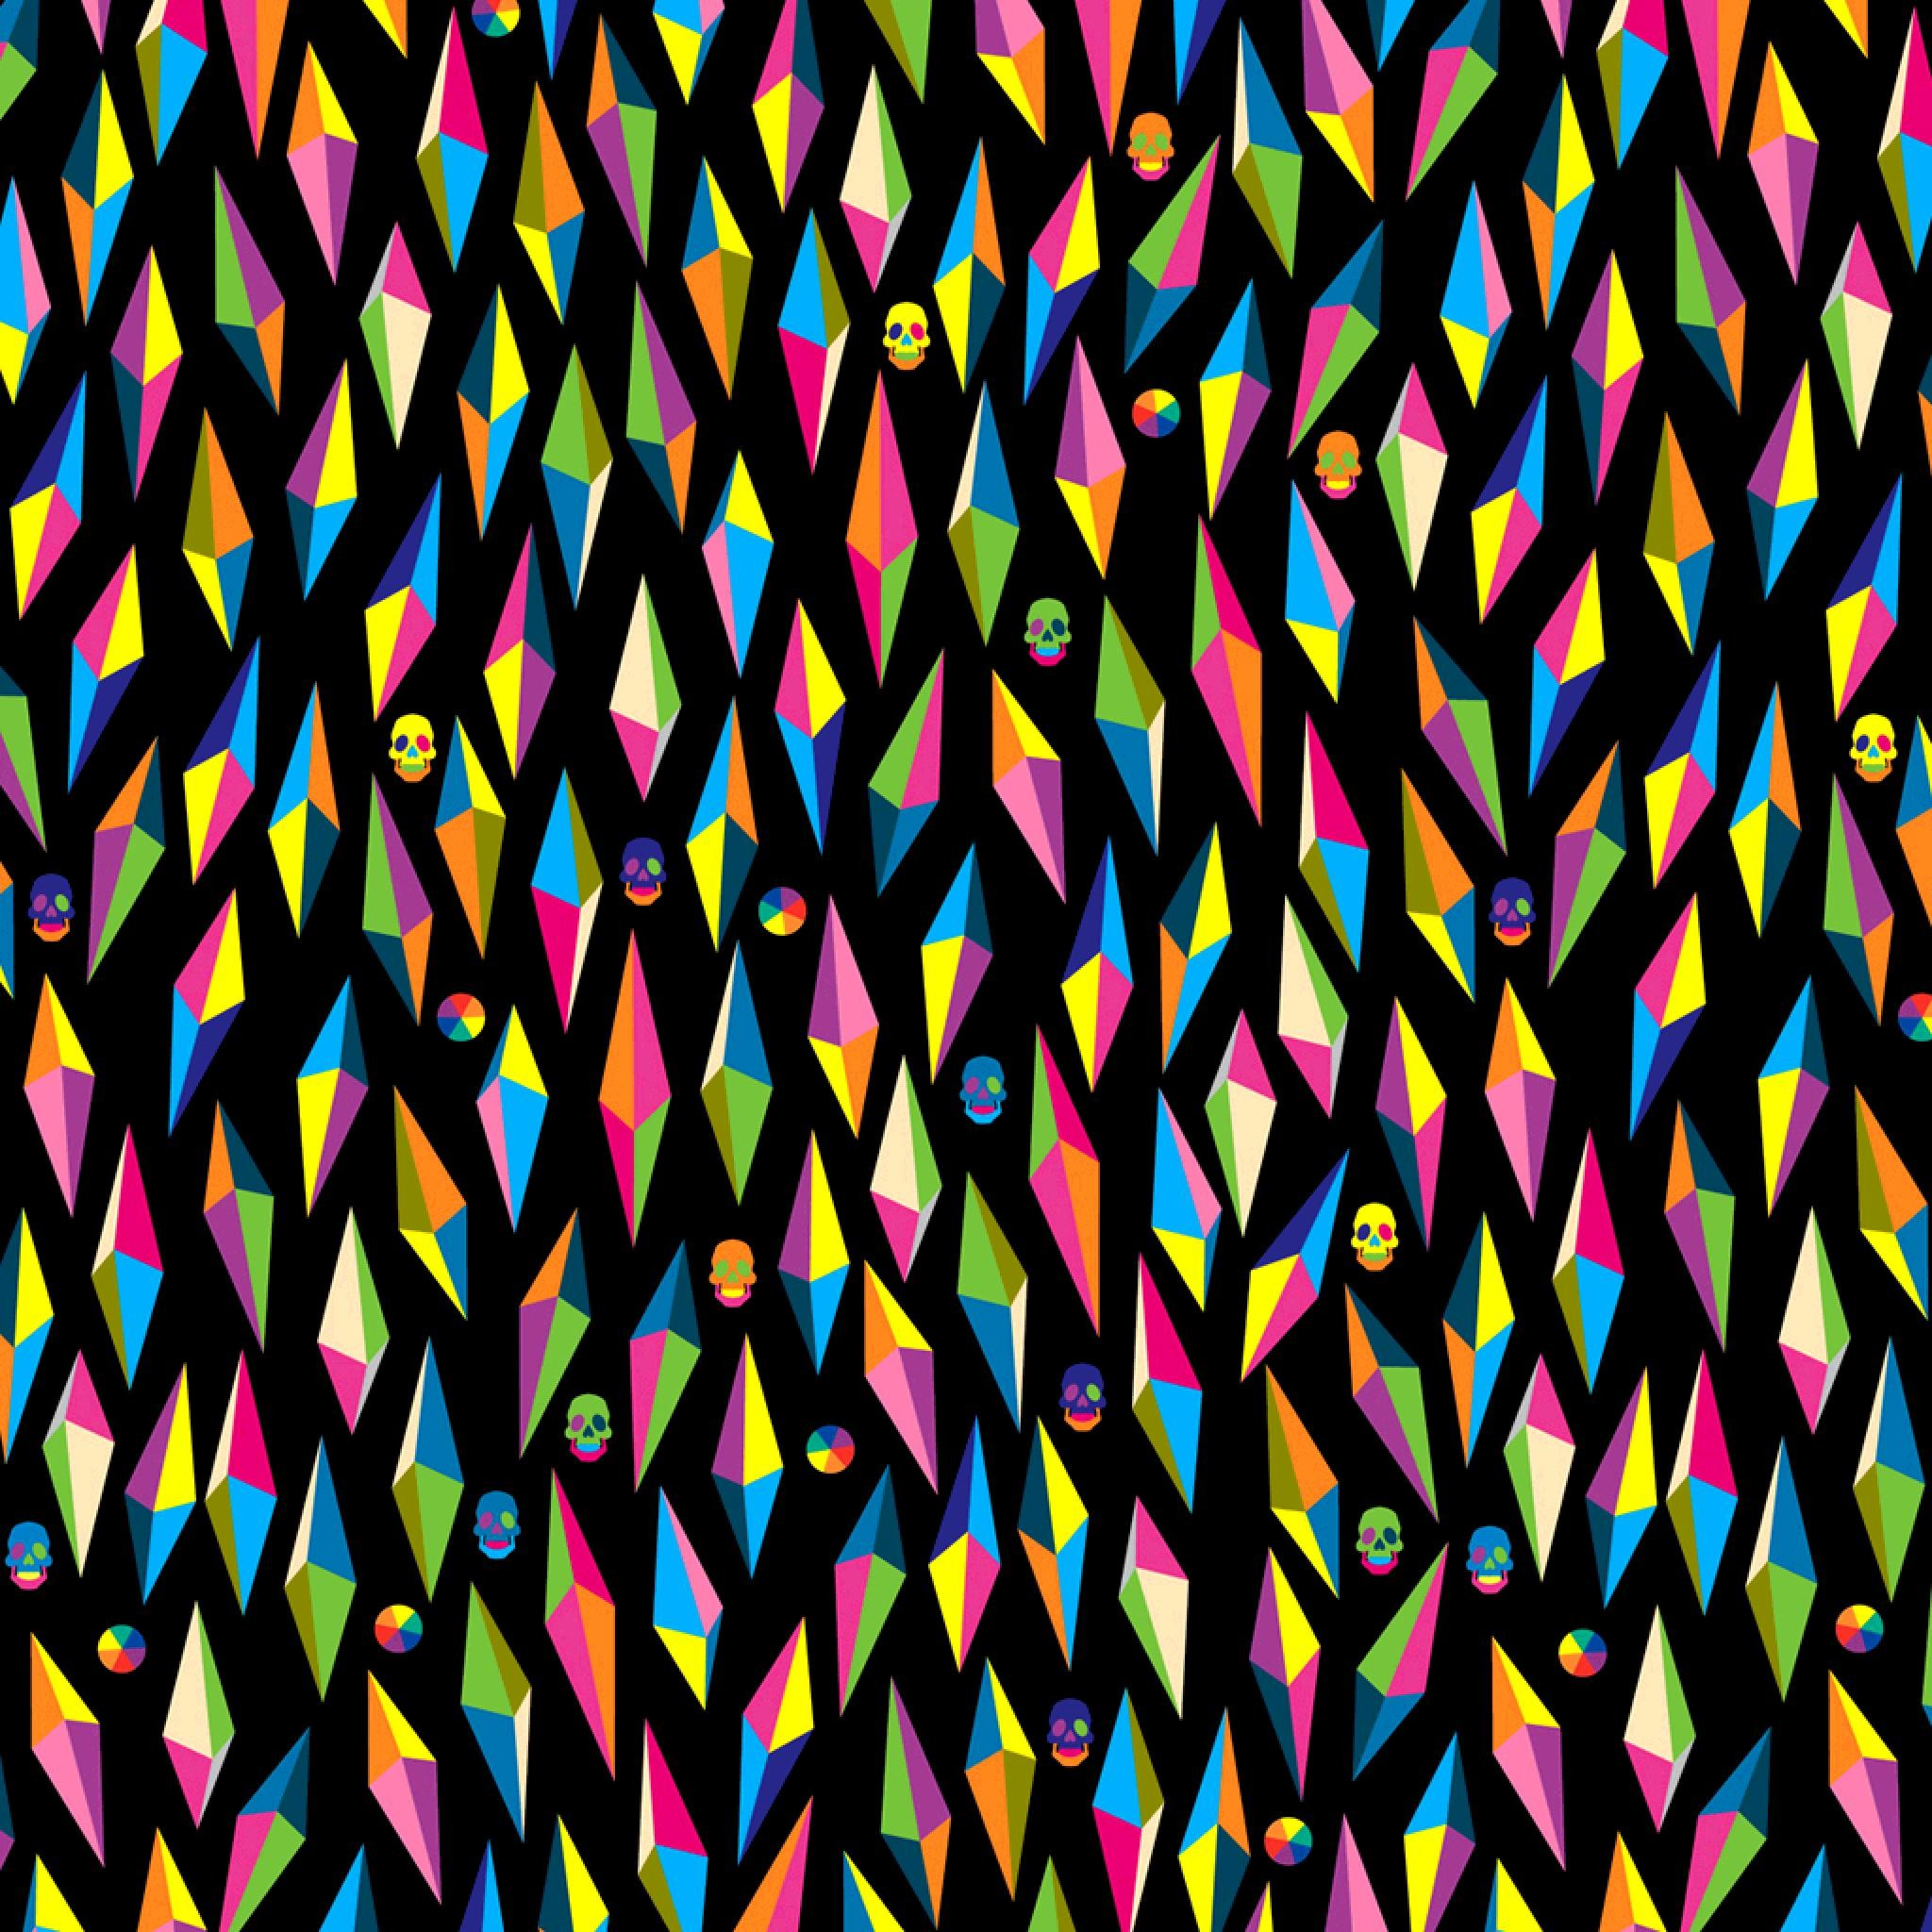 Pop Art Background ·① Download Free Cool High Resolution